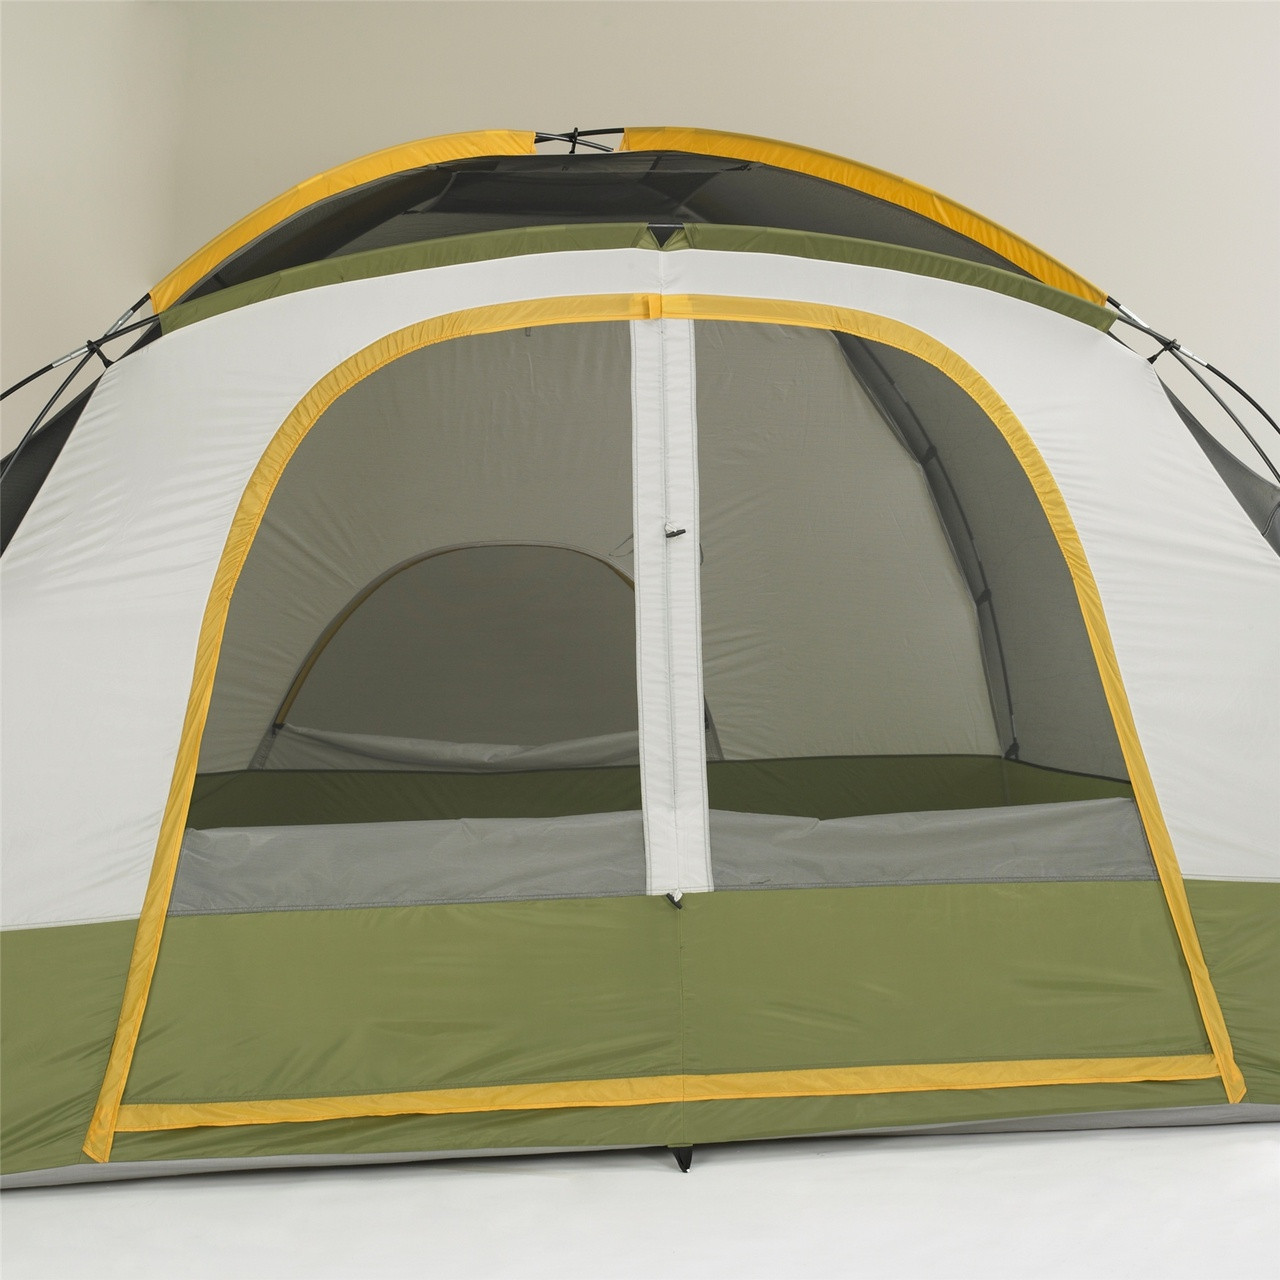 Close up view of the front door on the Wenzel Evergreen 6 tent, green and tan, setup with the rain fly off and the main screen door windows rolled down